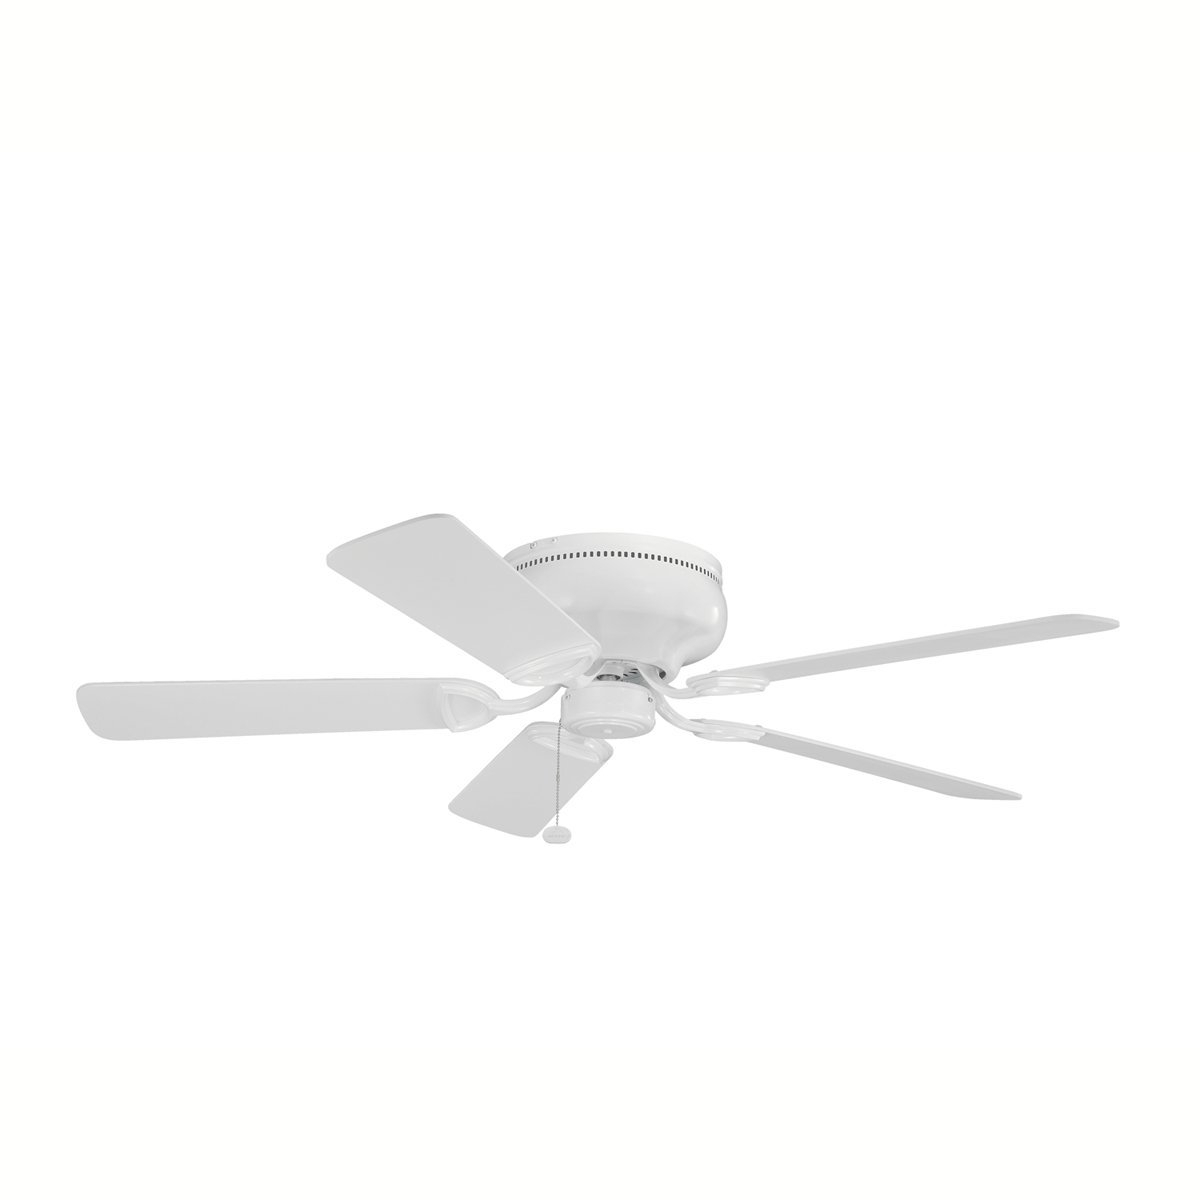 Outdoor Ceiling Fans Without Lights Intended For Recent Flush Mount Ceiling Fans Without Lights Big Outdoor Ceiling Fan With (View 17 of 20)